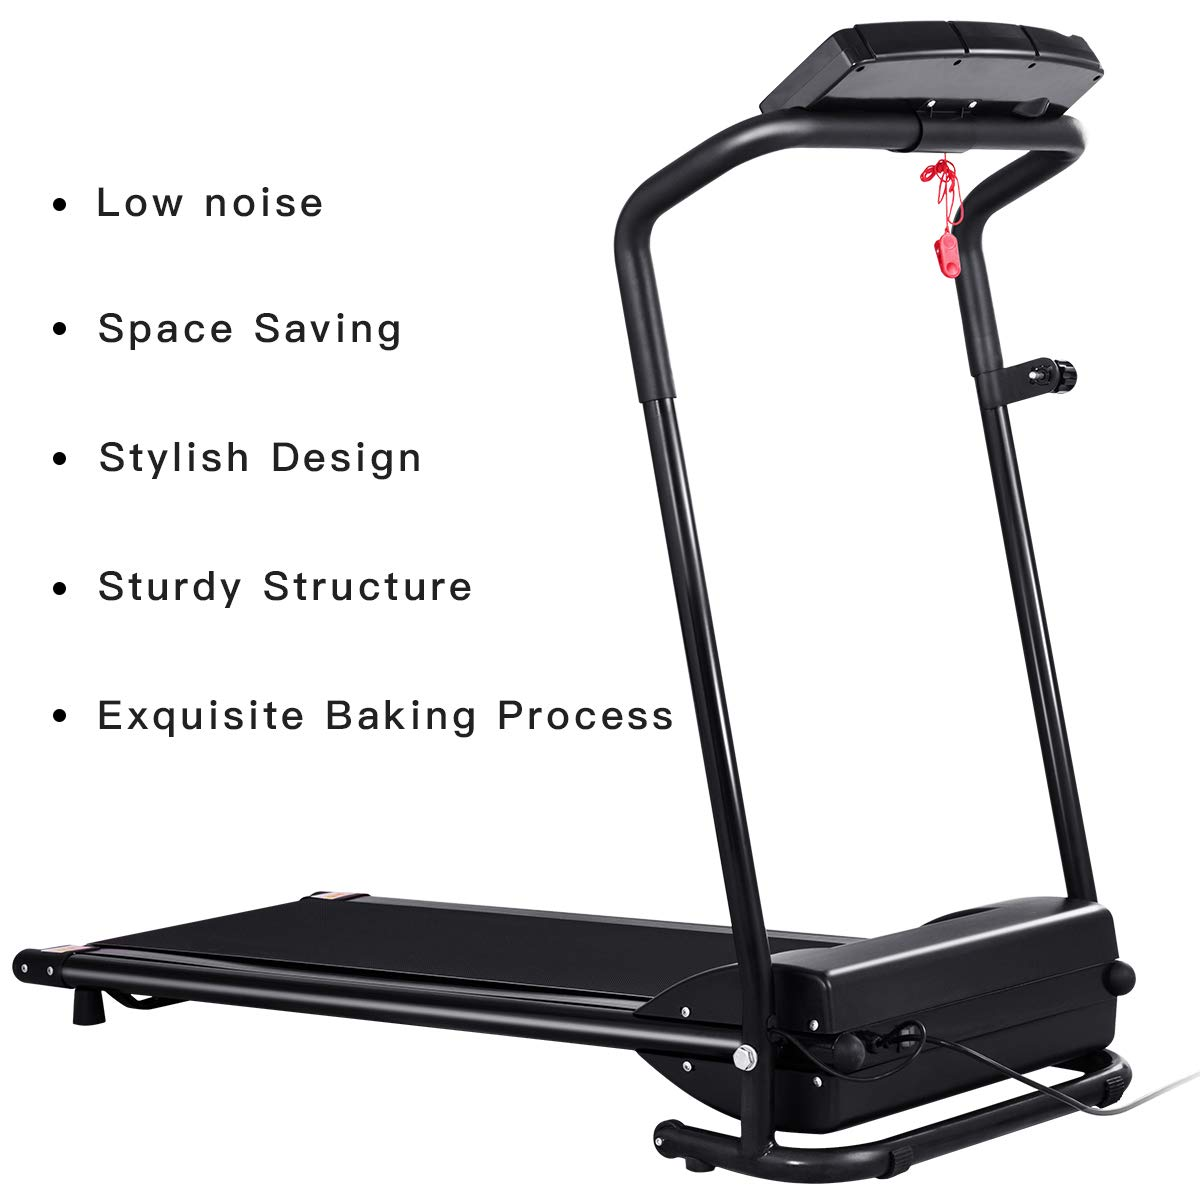 GYMAX Folding Electric Portable Treadmill Low Noise Jogging Walking Running Machine Exercise Treadmill w/Safety Key by GYMAX (Image #3)